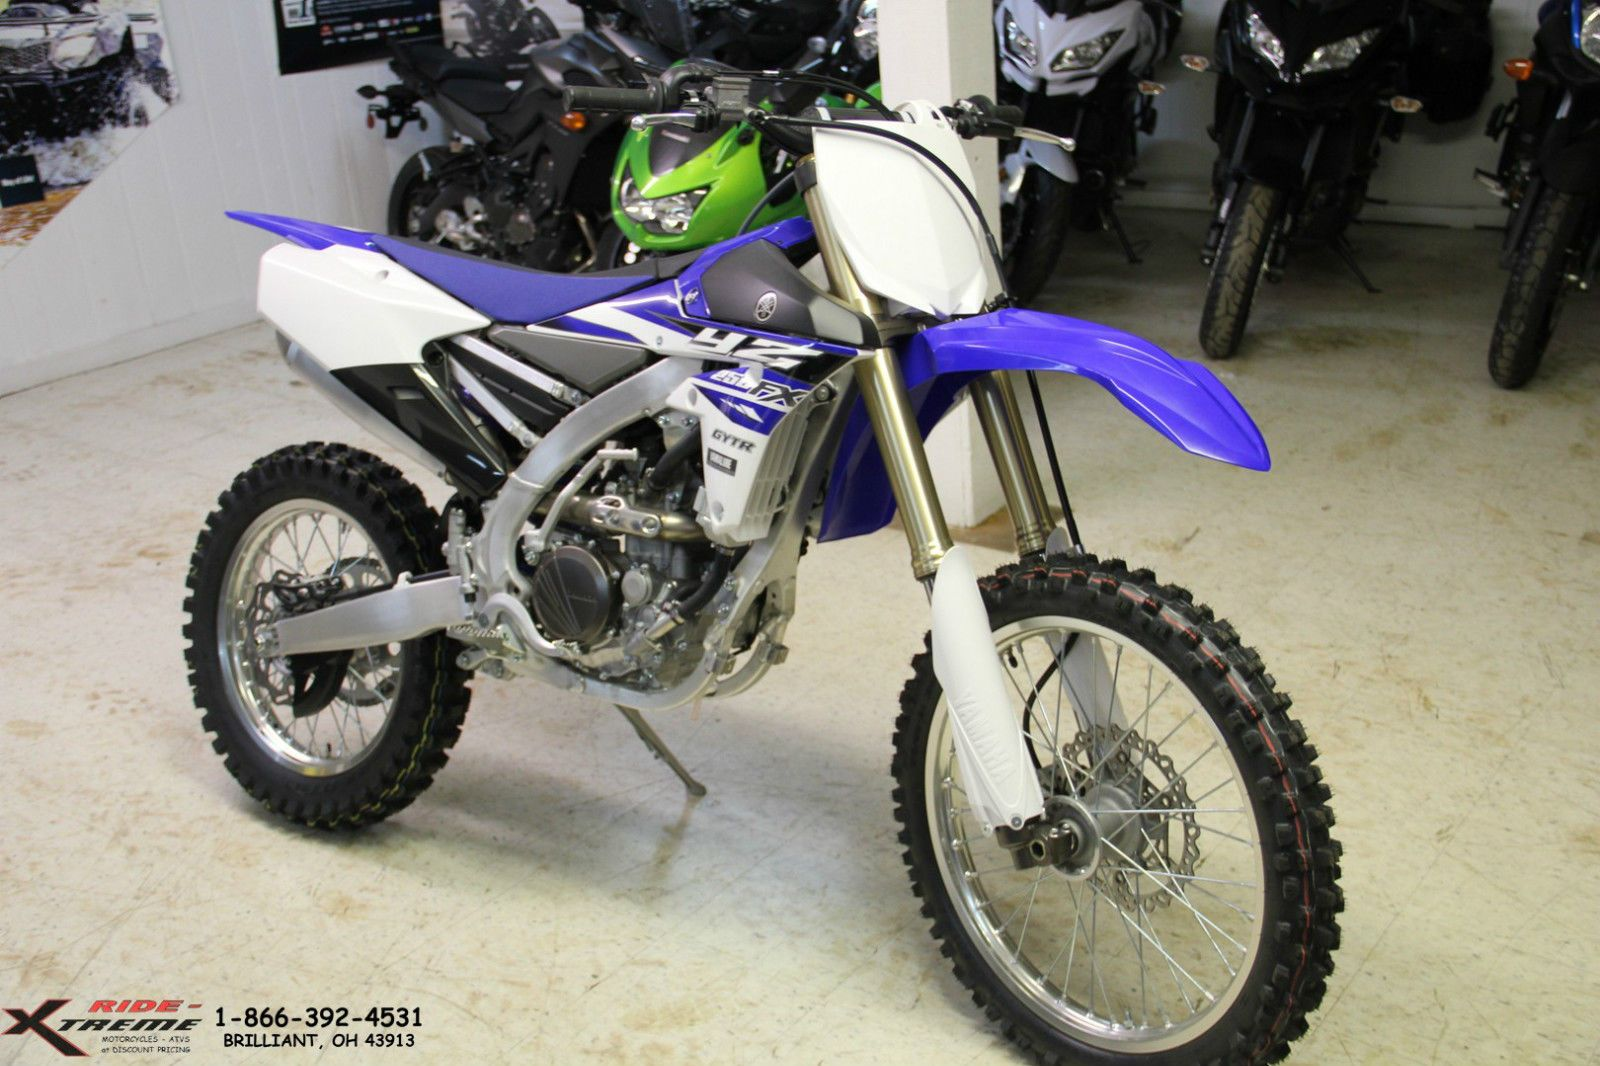 2015 Yamaha Yz250fx Dirt Bike For Sale Dirt Bike Bike Yamaha Motorcycles For Sale